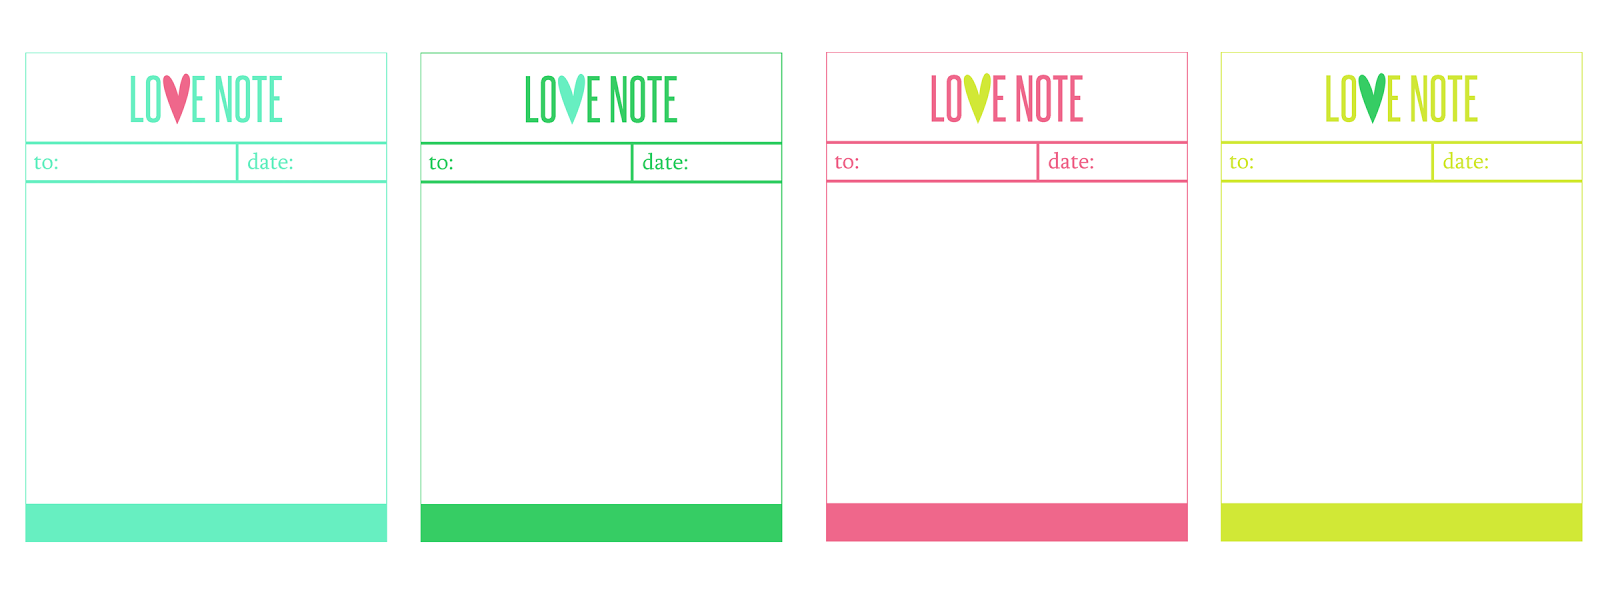 free printable valentine love notes by eighteen25 | skip to my lou